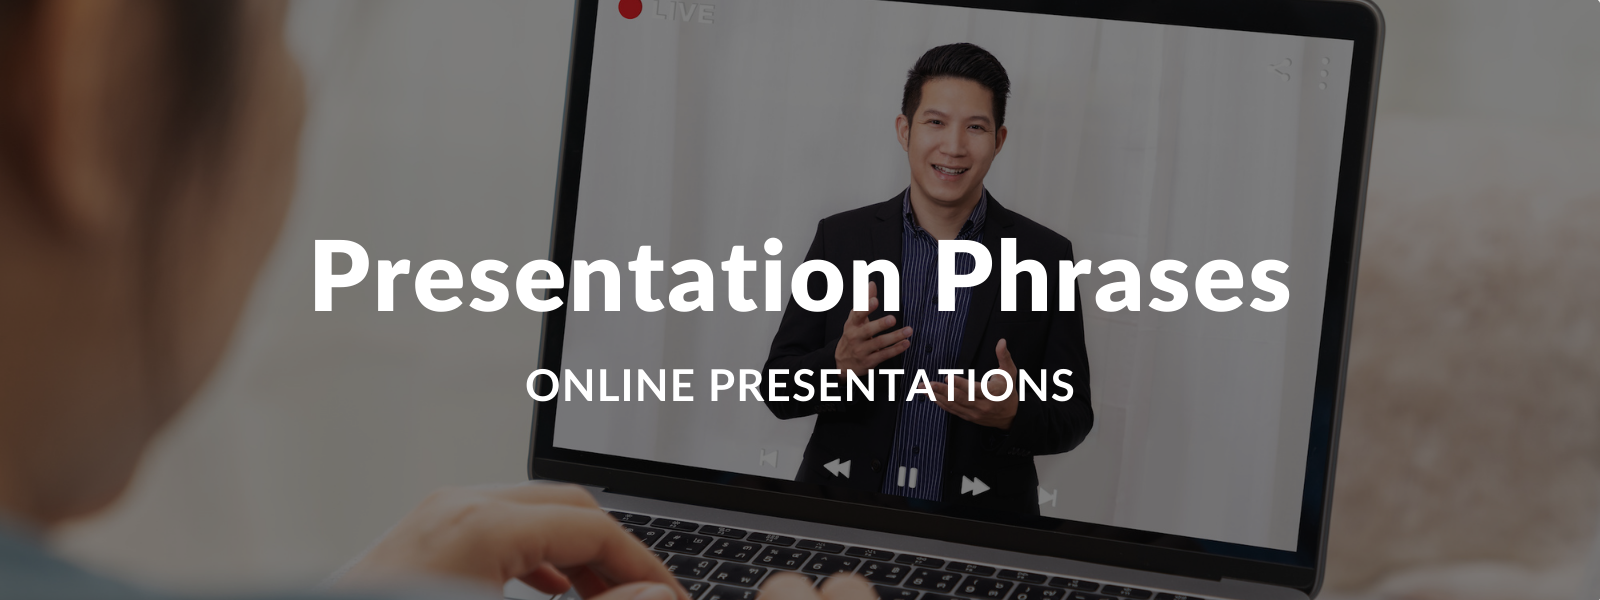 Online Presentations Useful Phrases - Talaera Business English Blog